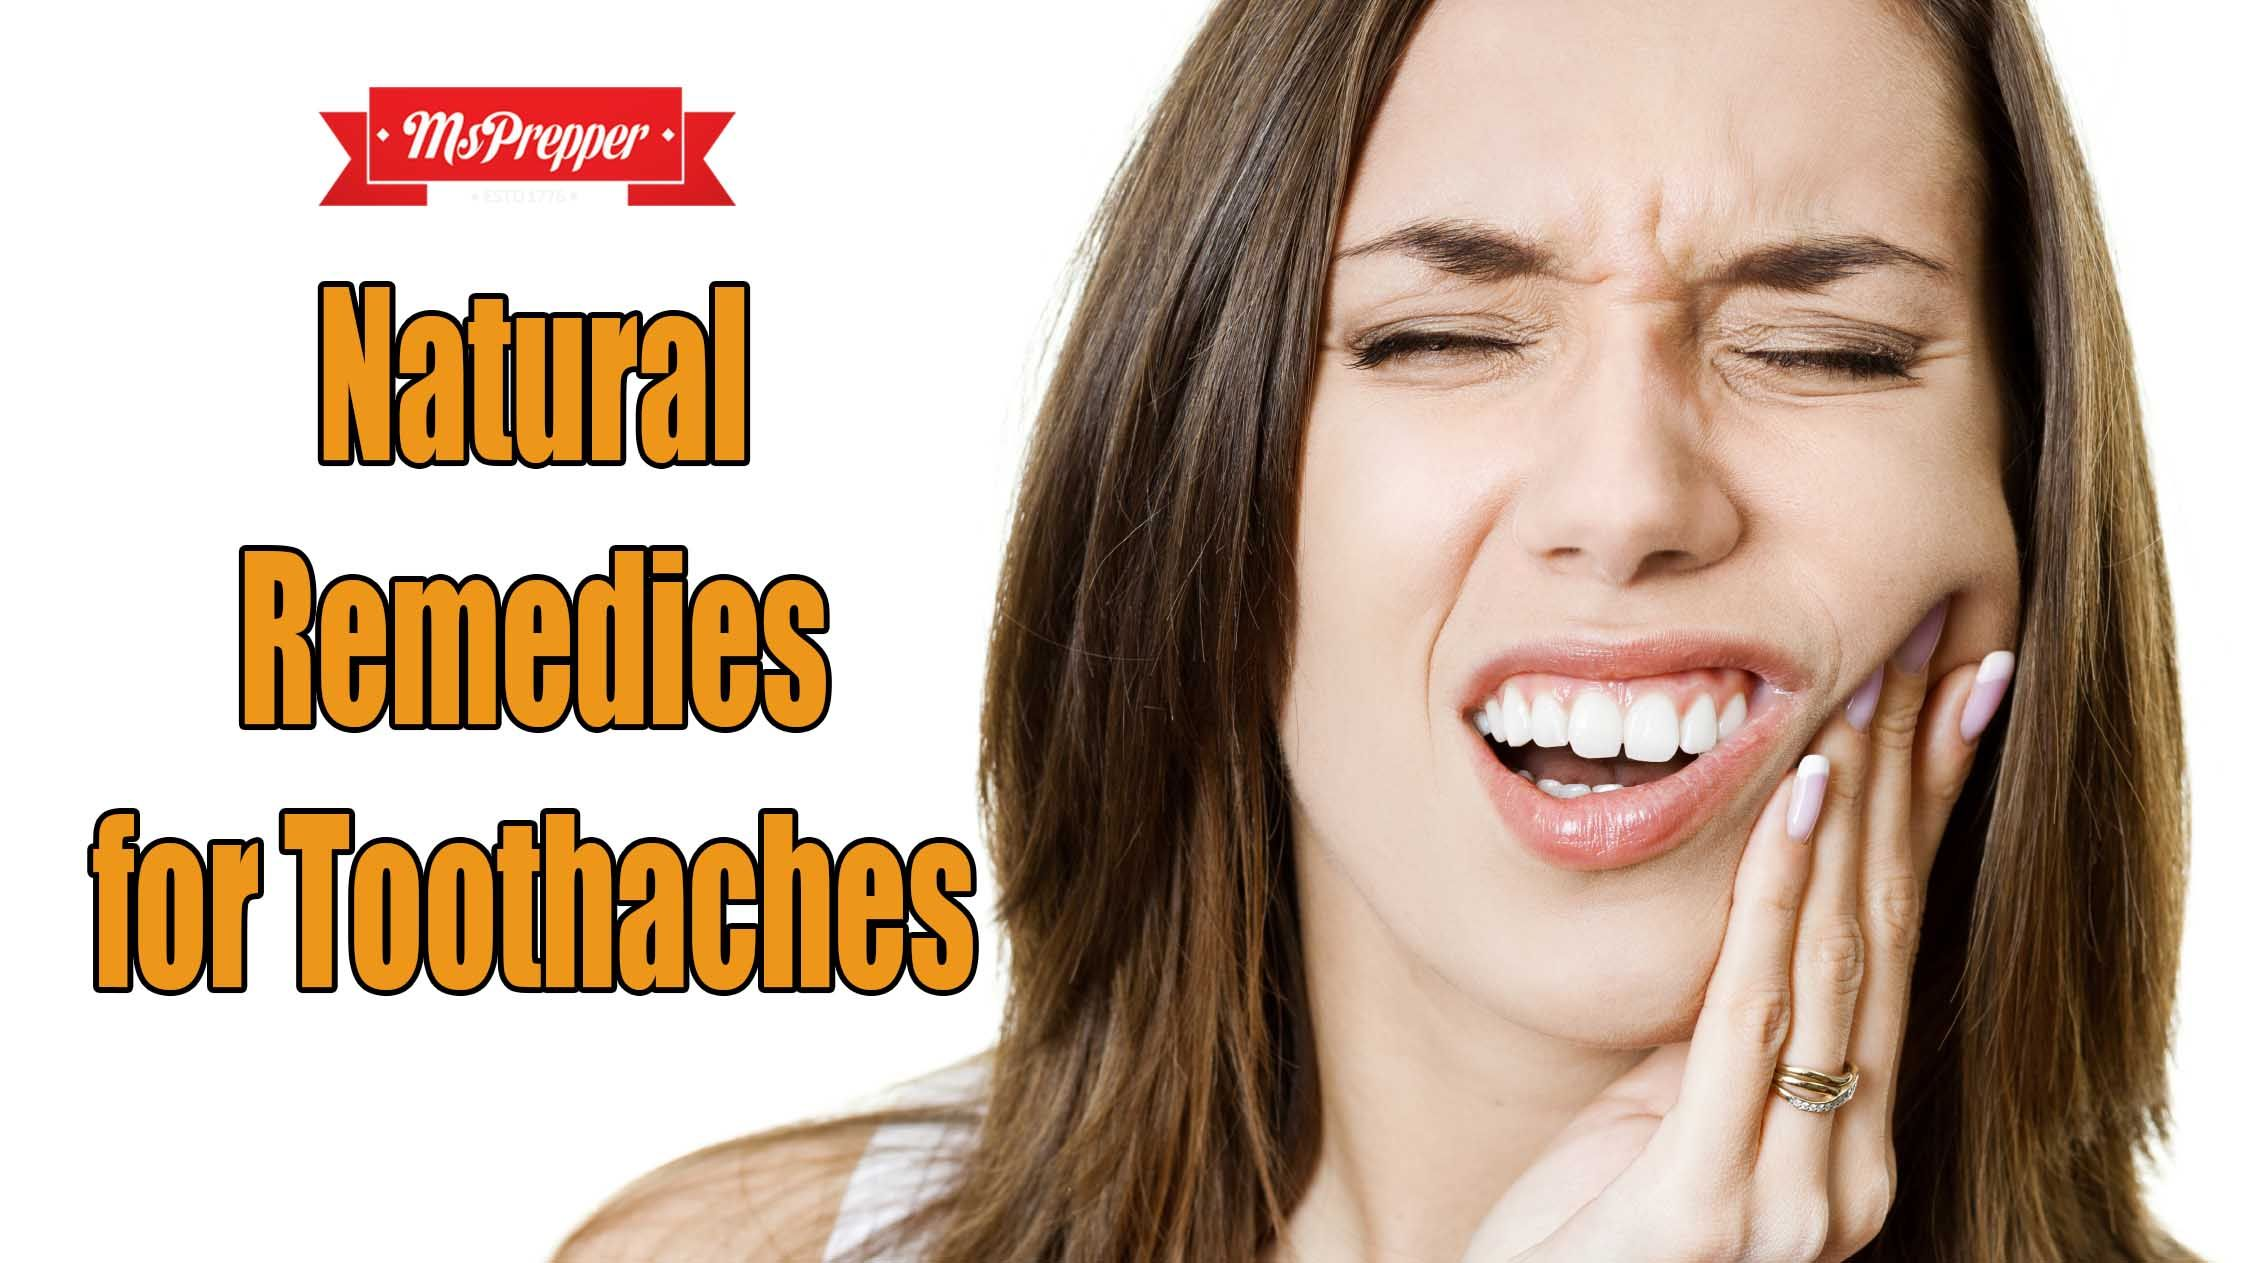 Donut let a toothache keep you down Here are some natural remedies